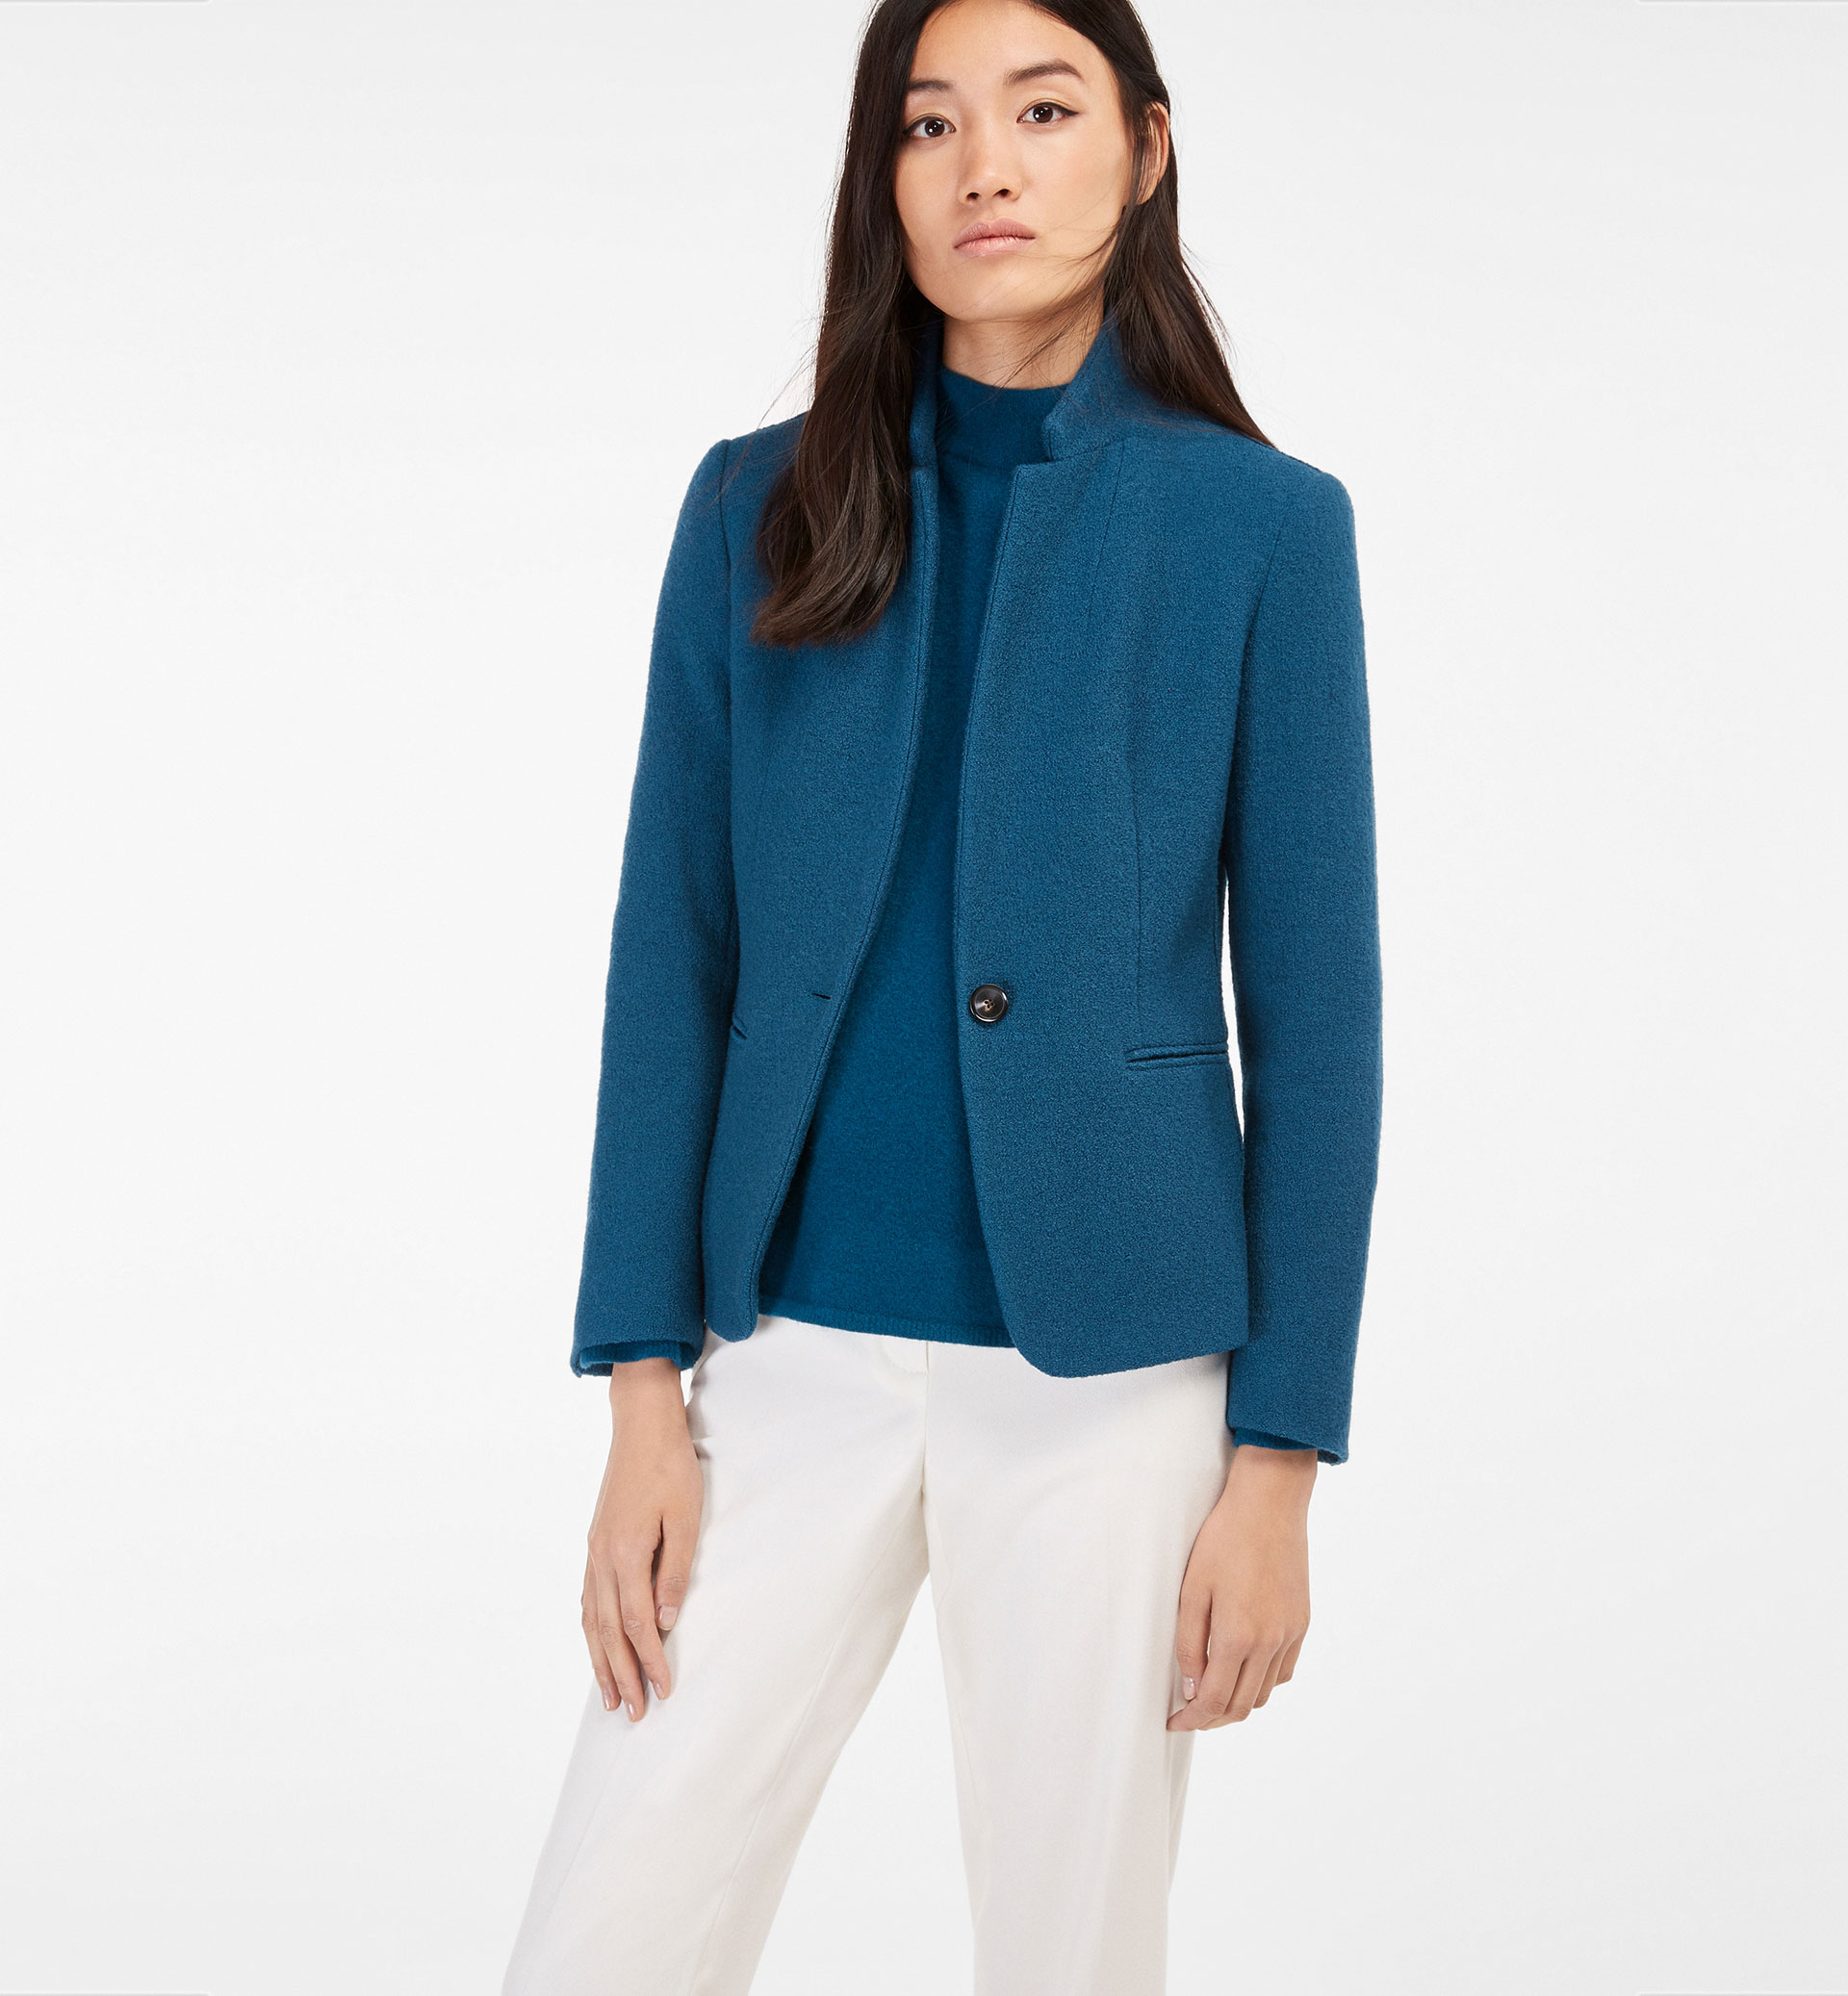 GREEN TEXTURED WEAVE WOOL BLAZER